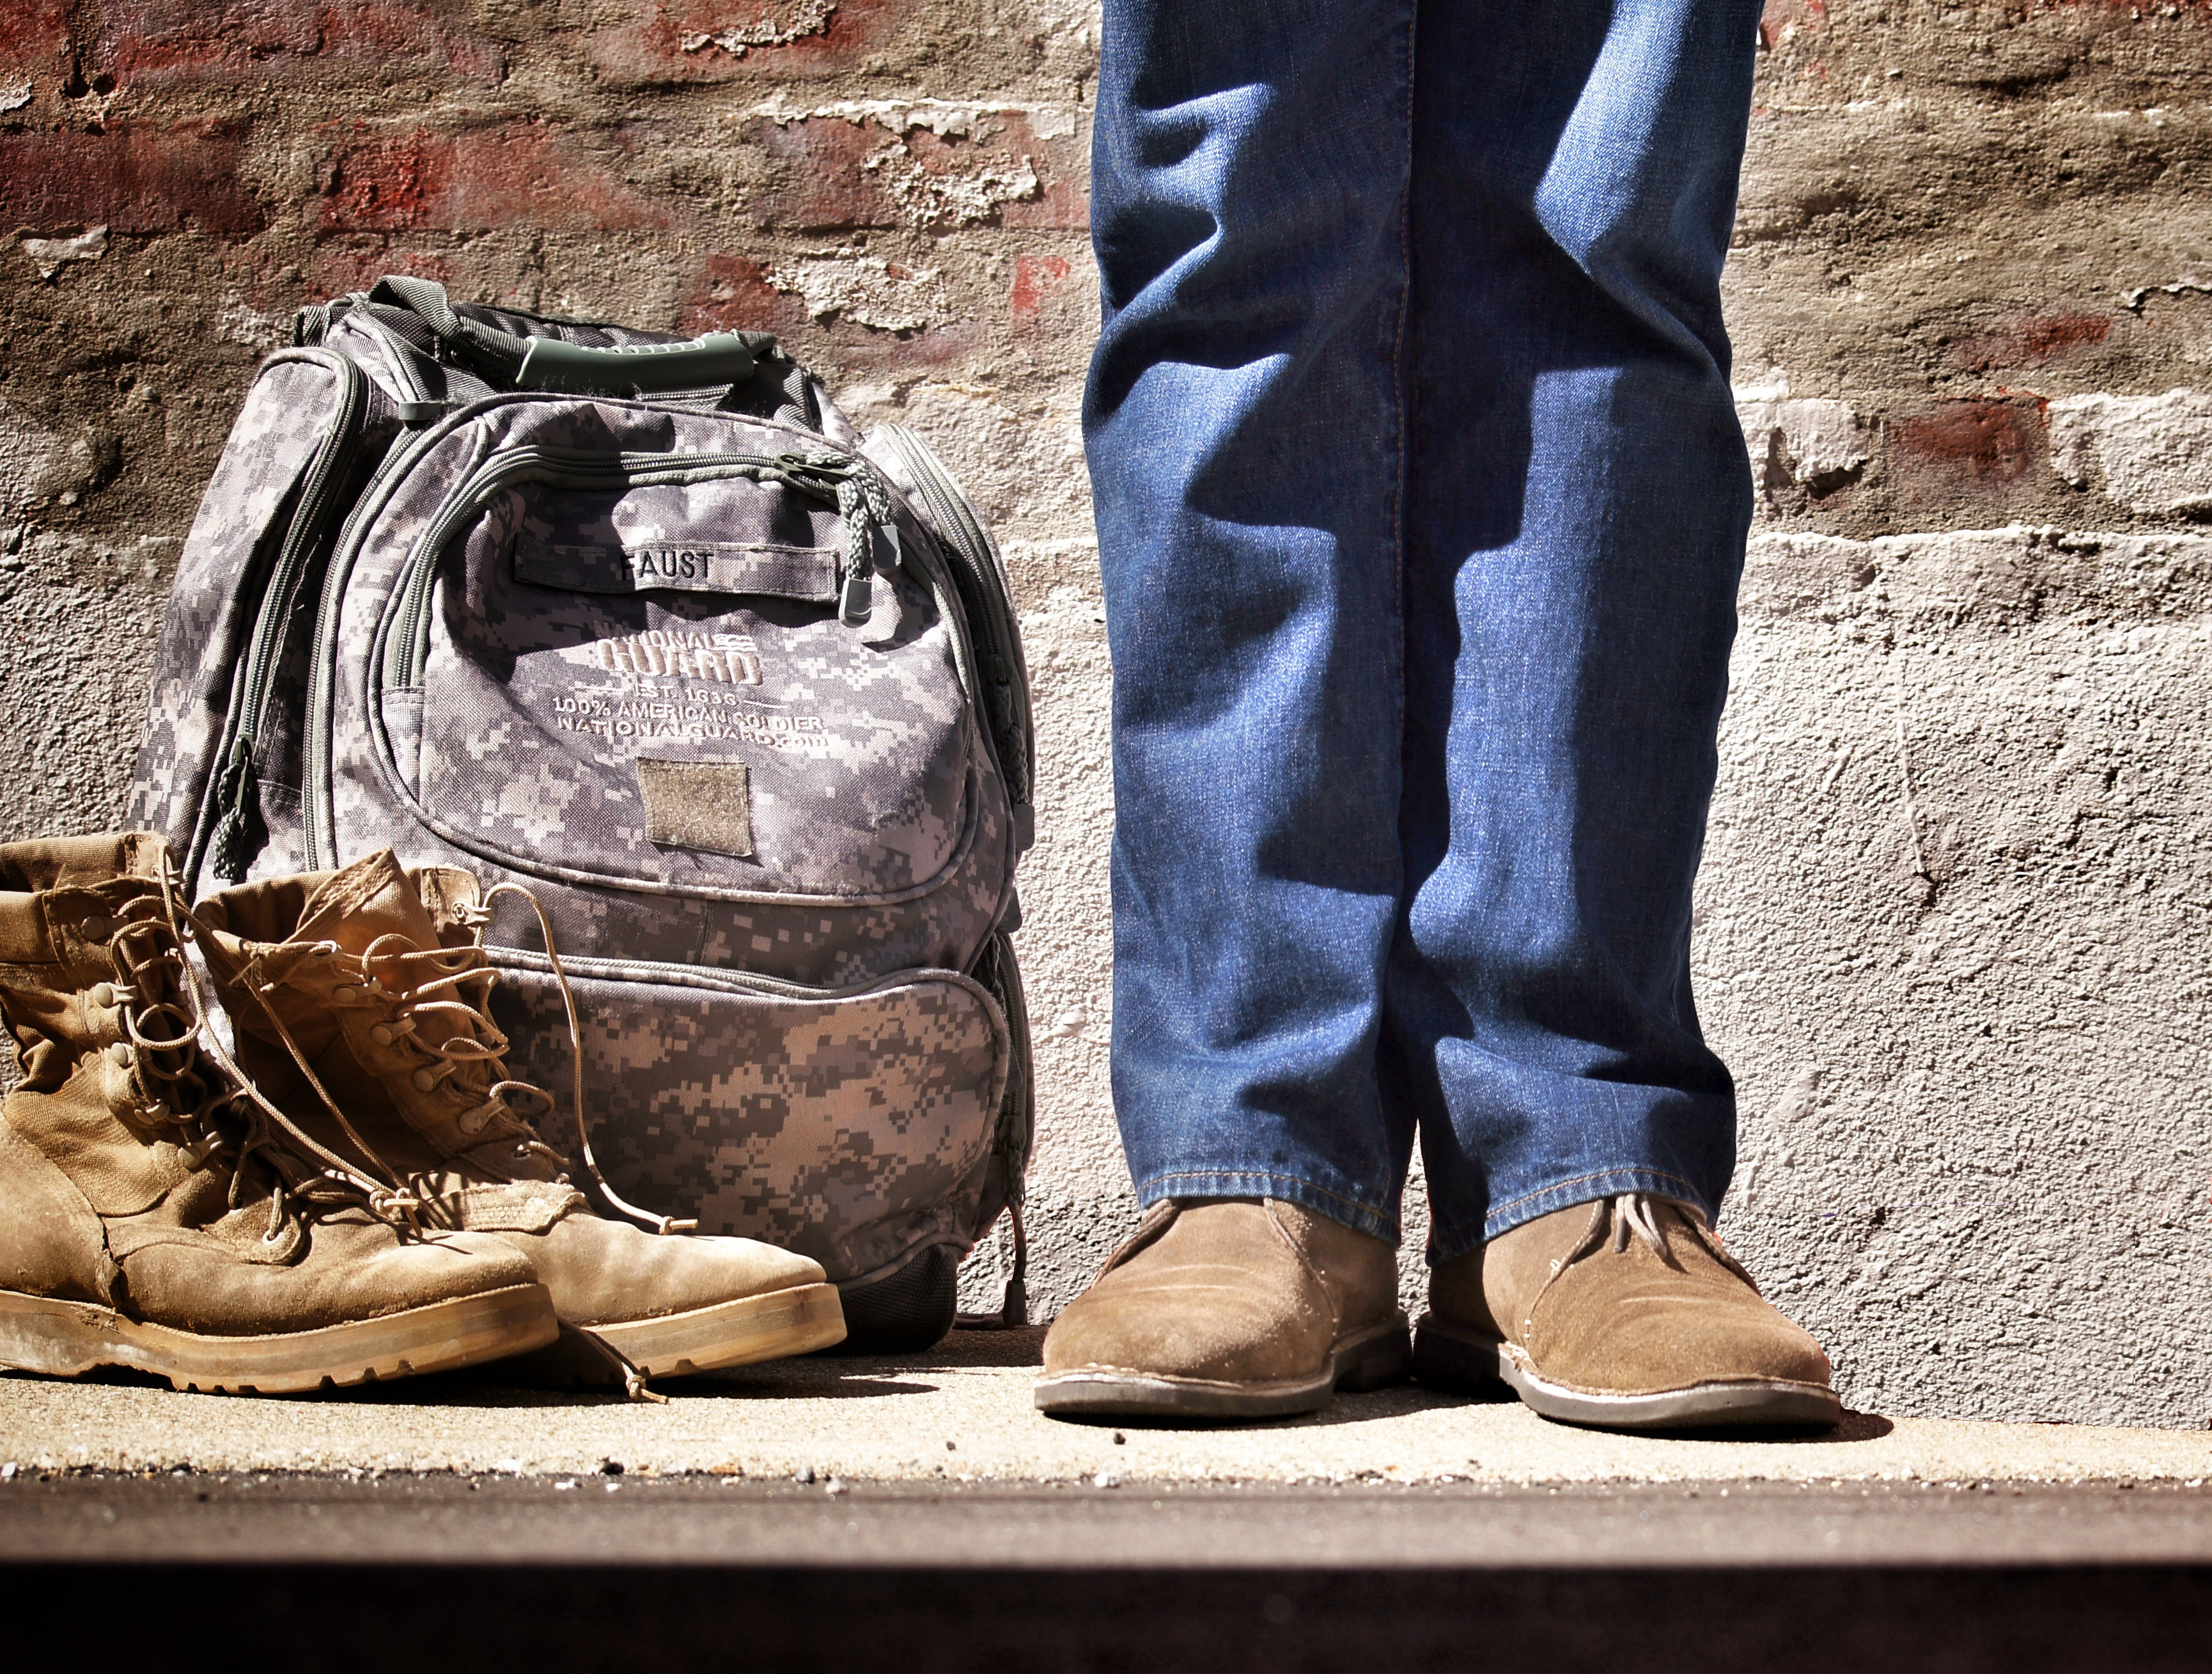 Helping to Transition Our Veterans